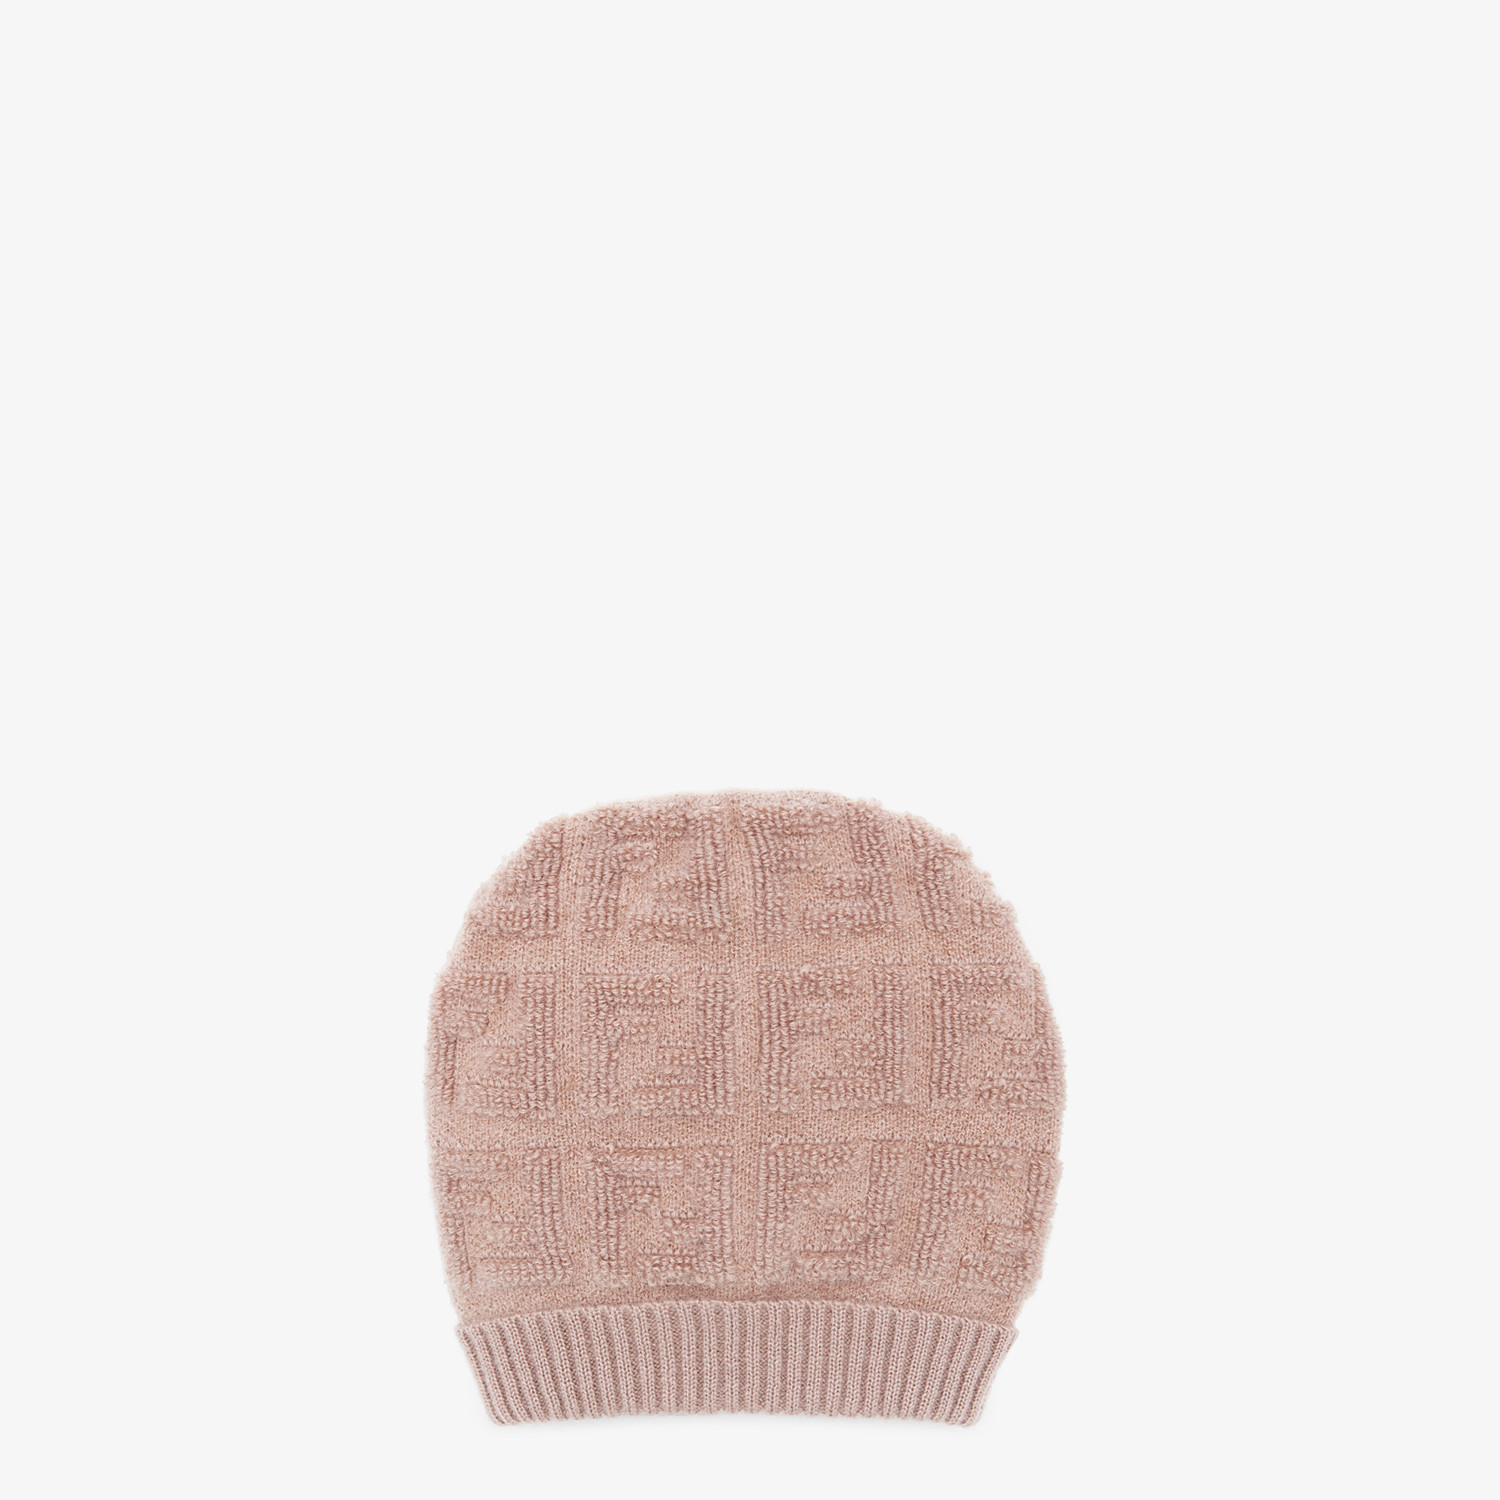 FENDI HAT - Beige knit hat - view 1 detail